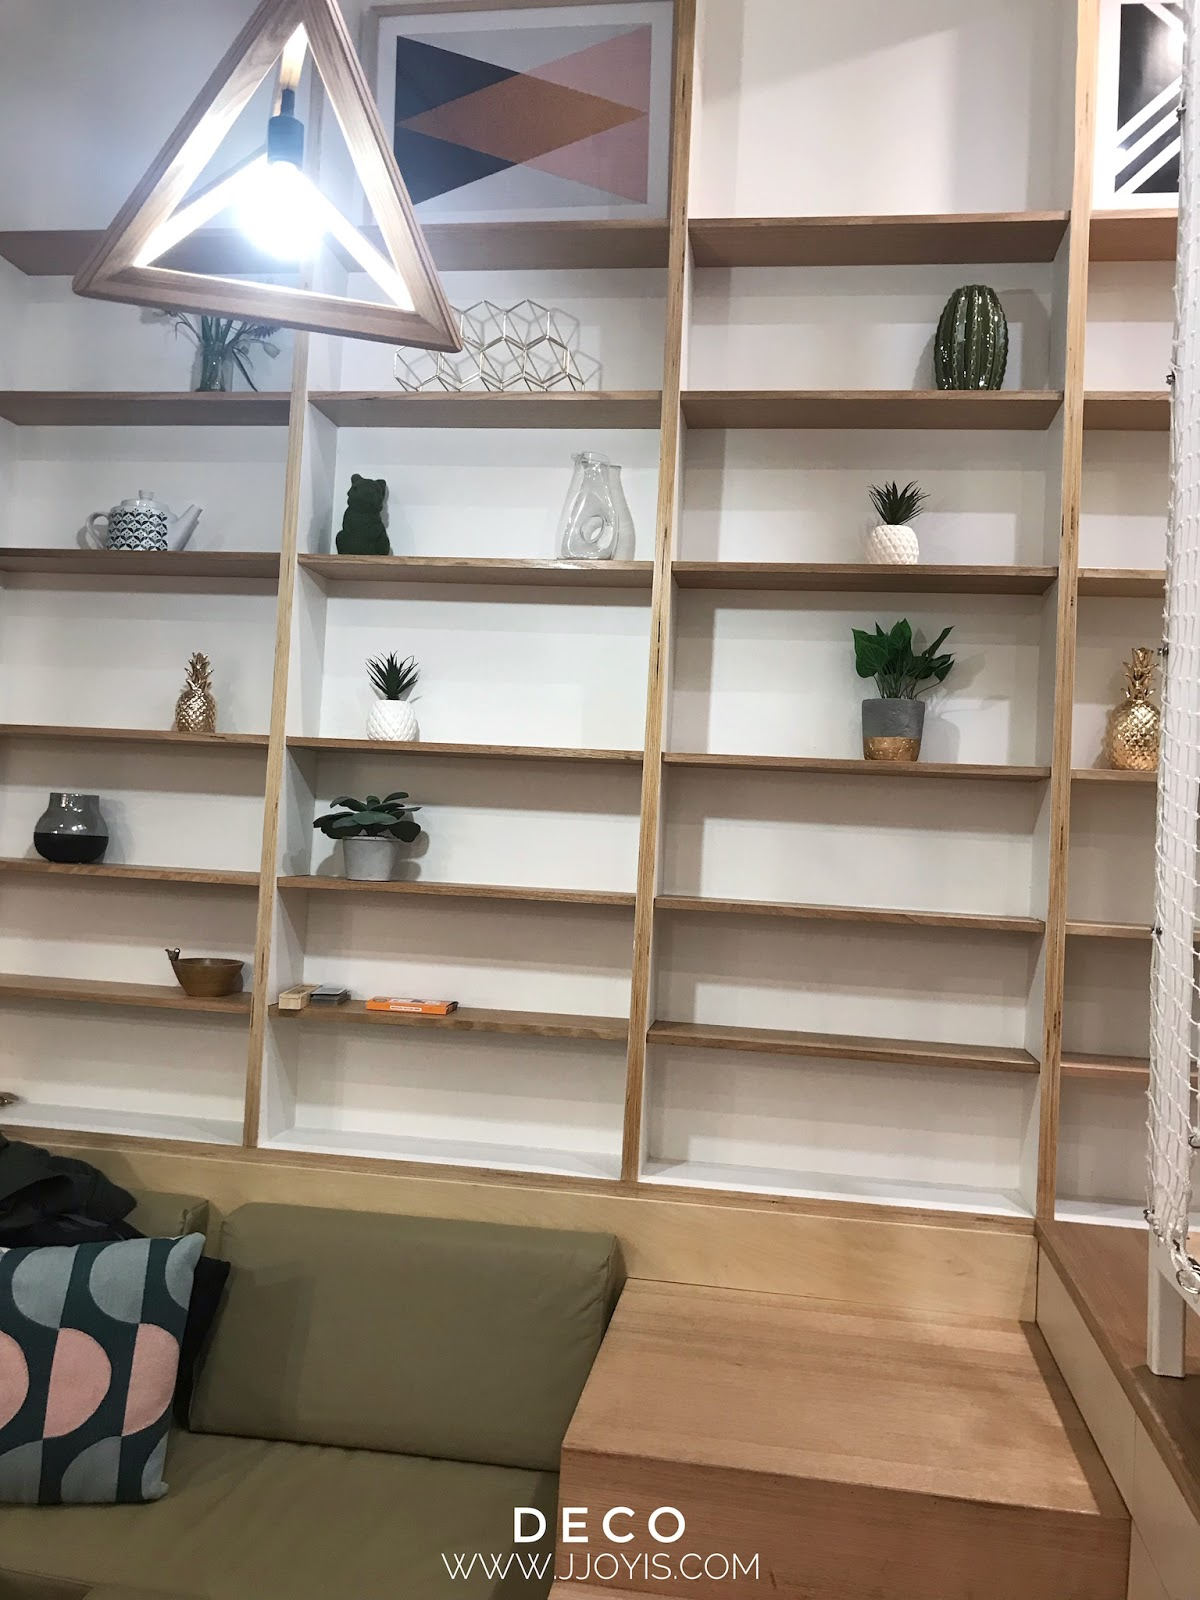 Airbnb for large groups (sleep 7) in Brisbane CBD deco